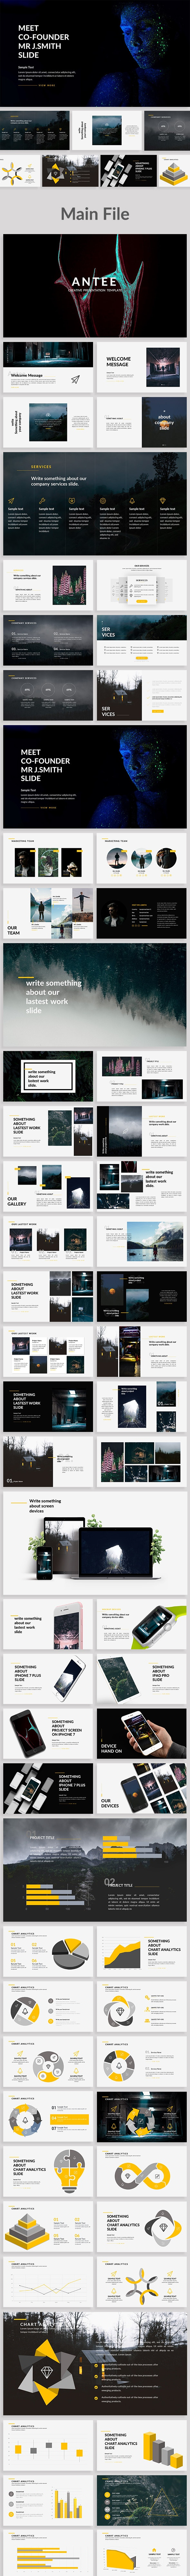 Antee - Creative Powerpoint Template - Creative PowerPoint Templates